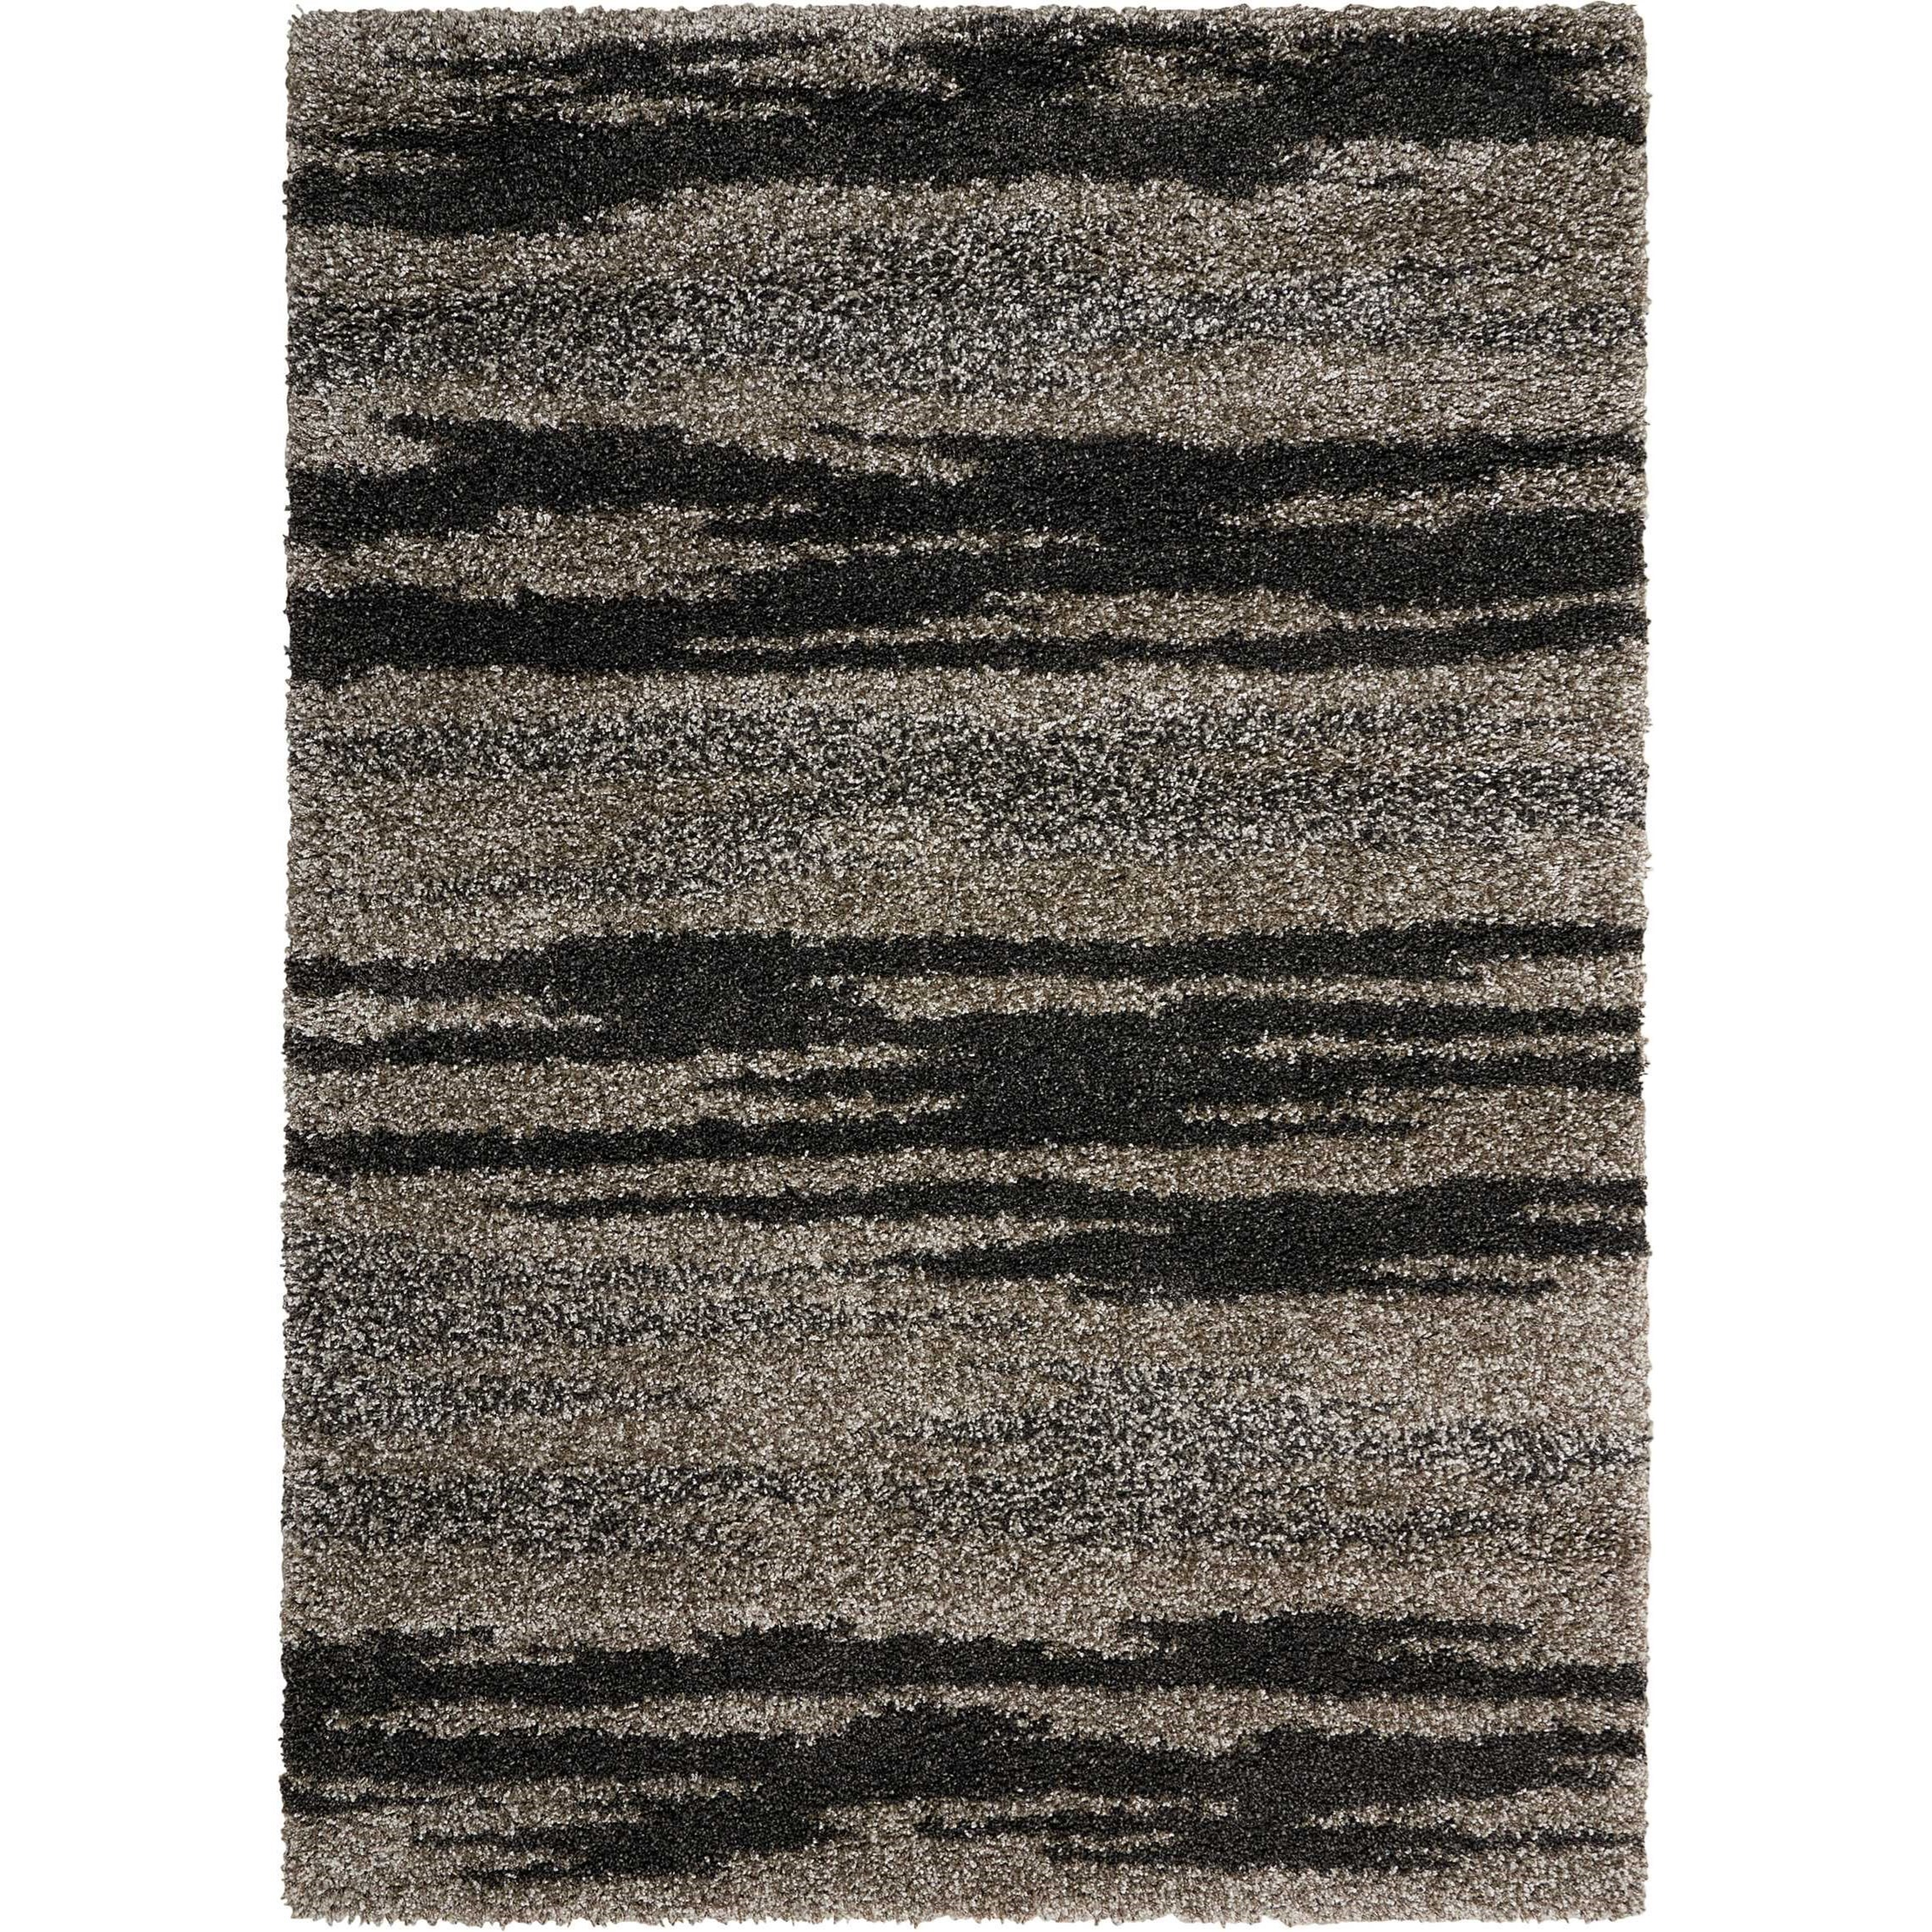 """Amore 7'10"""" x 10'10"""" Marble Rectangle Rug by Nourison at Home Collections Furniture"""